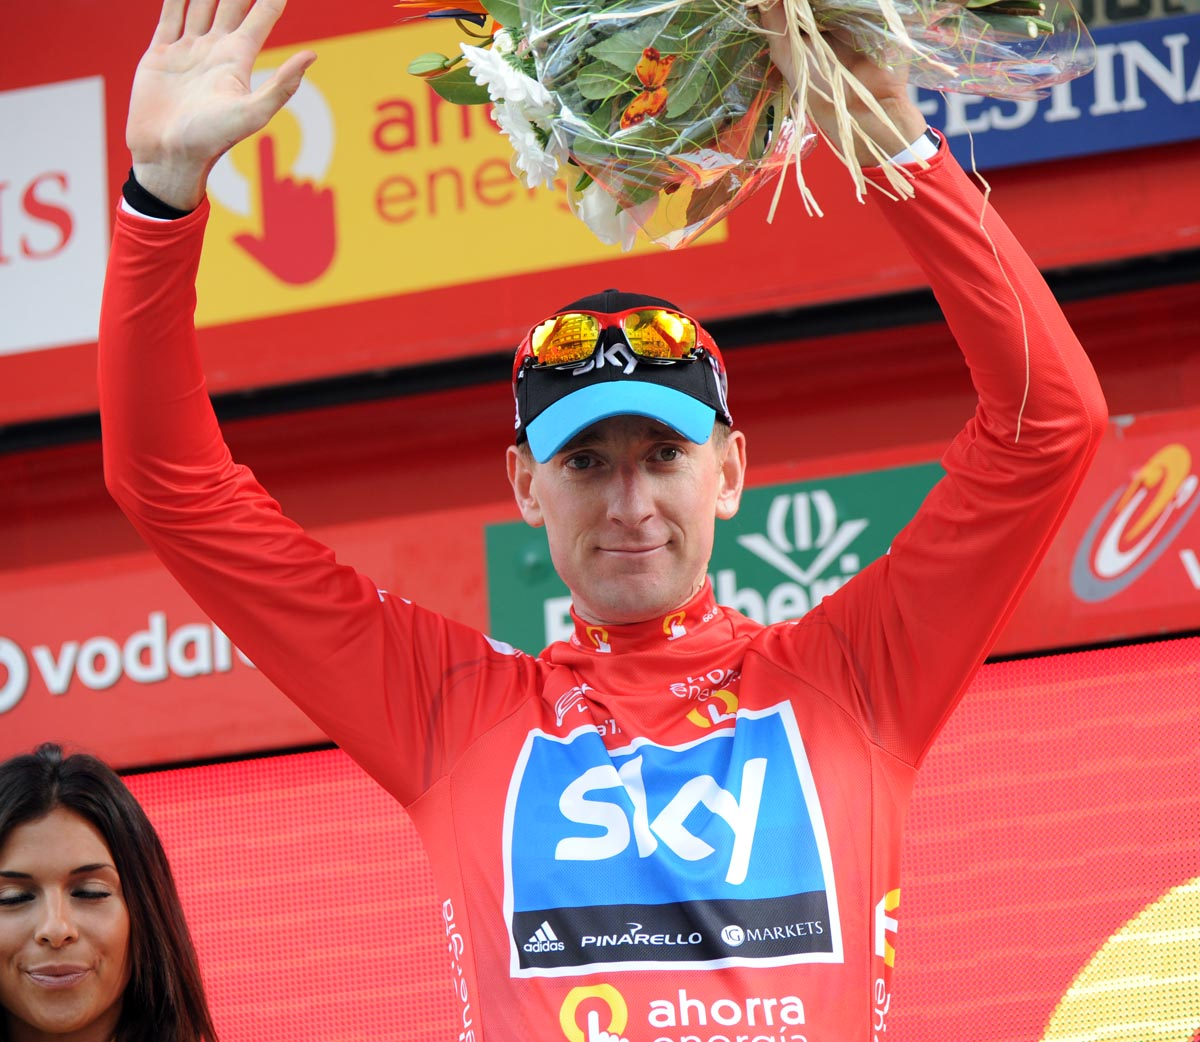 Bradley Wiggins in lead, Vuelta a Espana 2011, stage 12